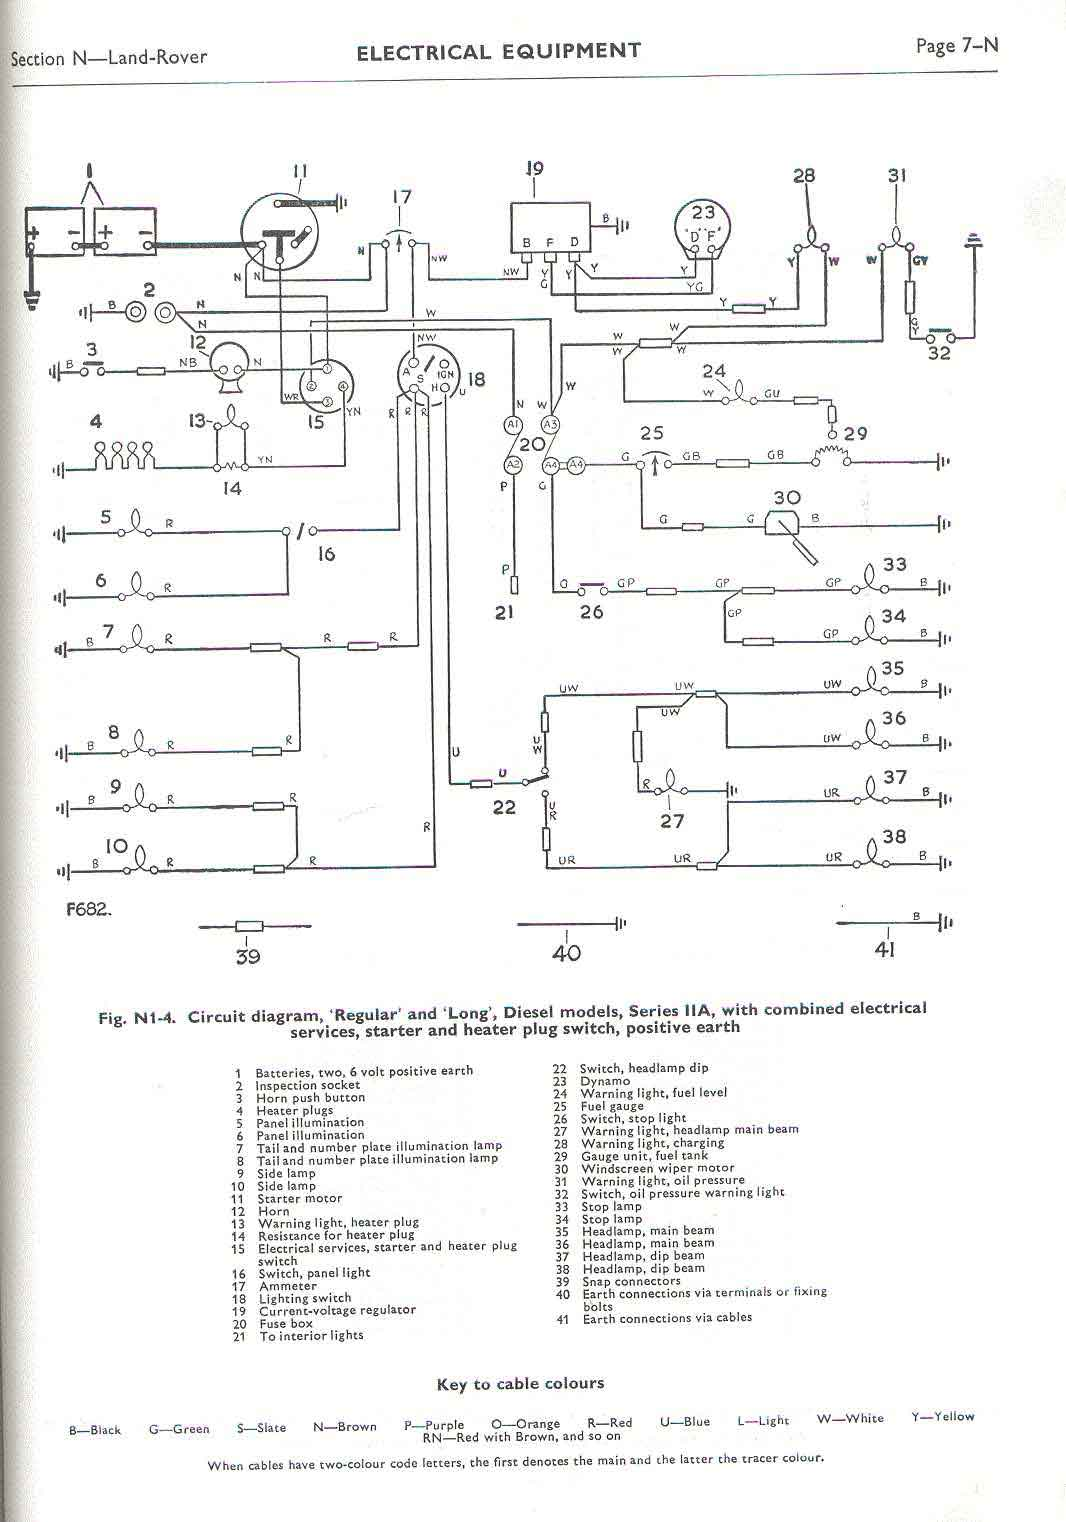 SIIA+VED2 series wiring diagram international 8100 series wiring diagrams Coleman Mobile Home Furnace Schematics at gsmx.co